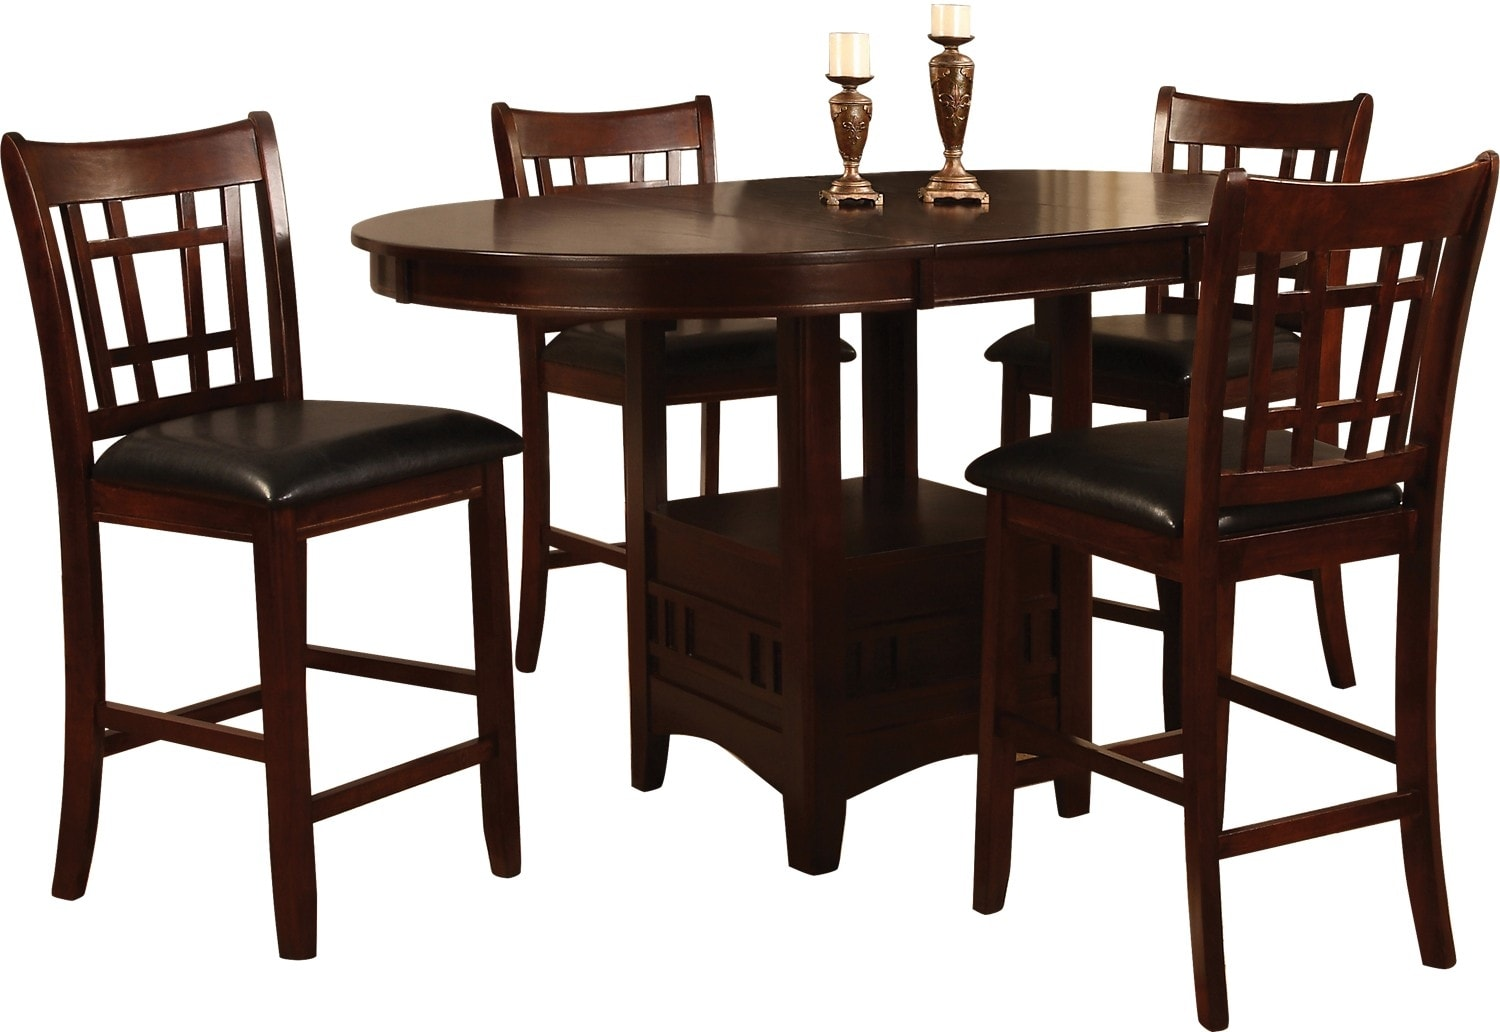 dalton 5 piece chocolate counterheight dining package furniture the brick a